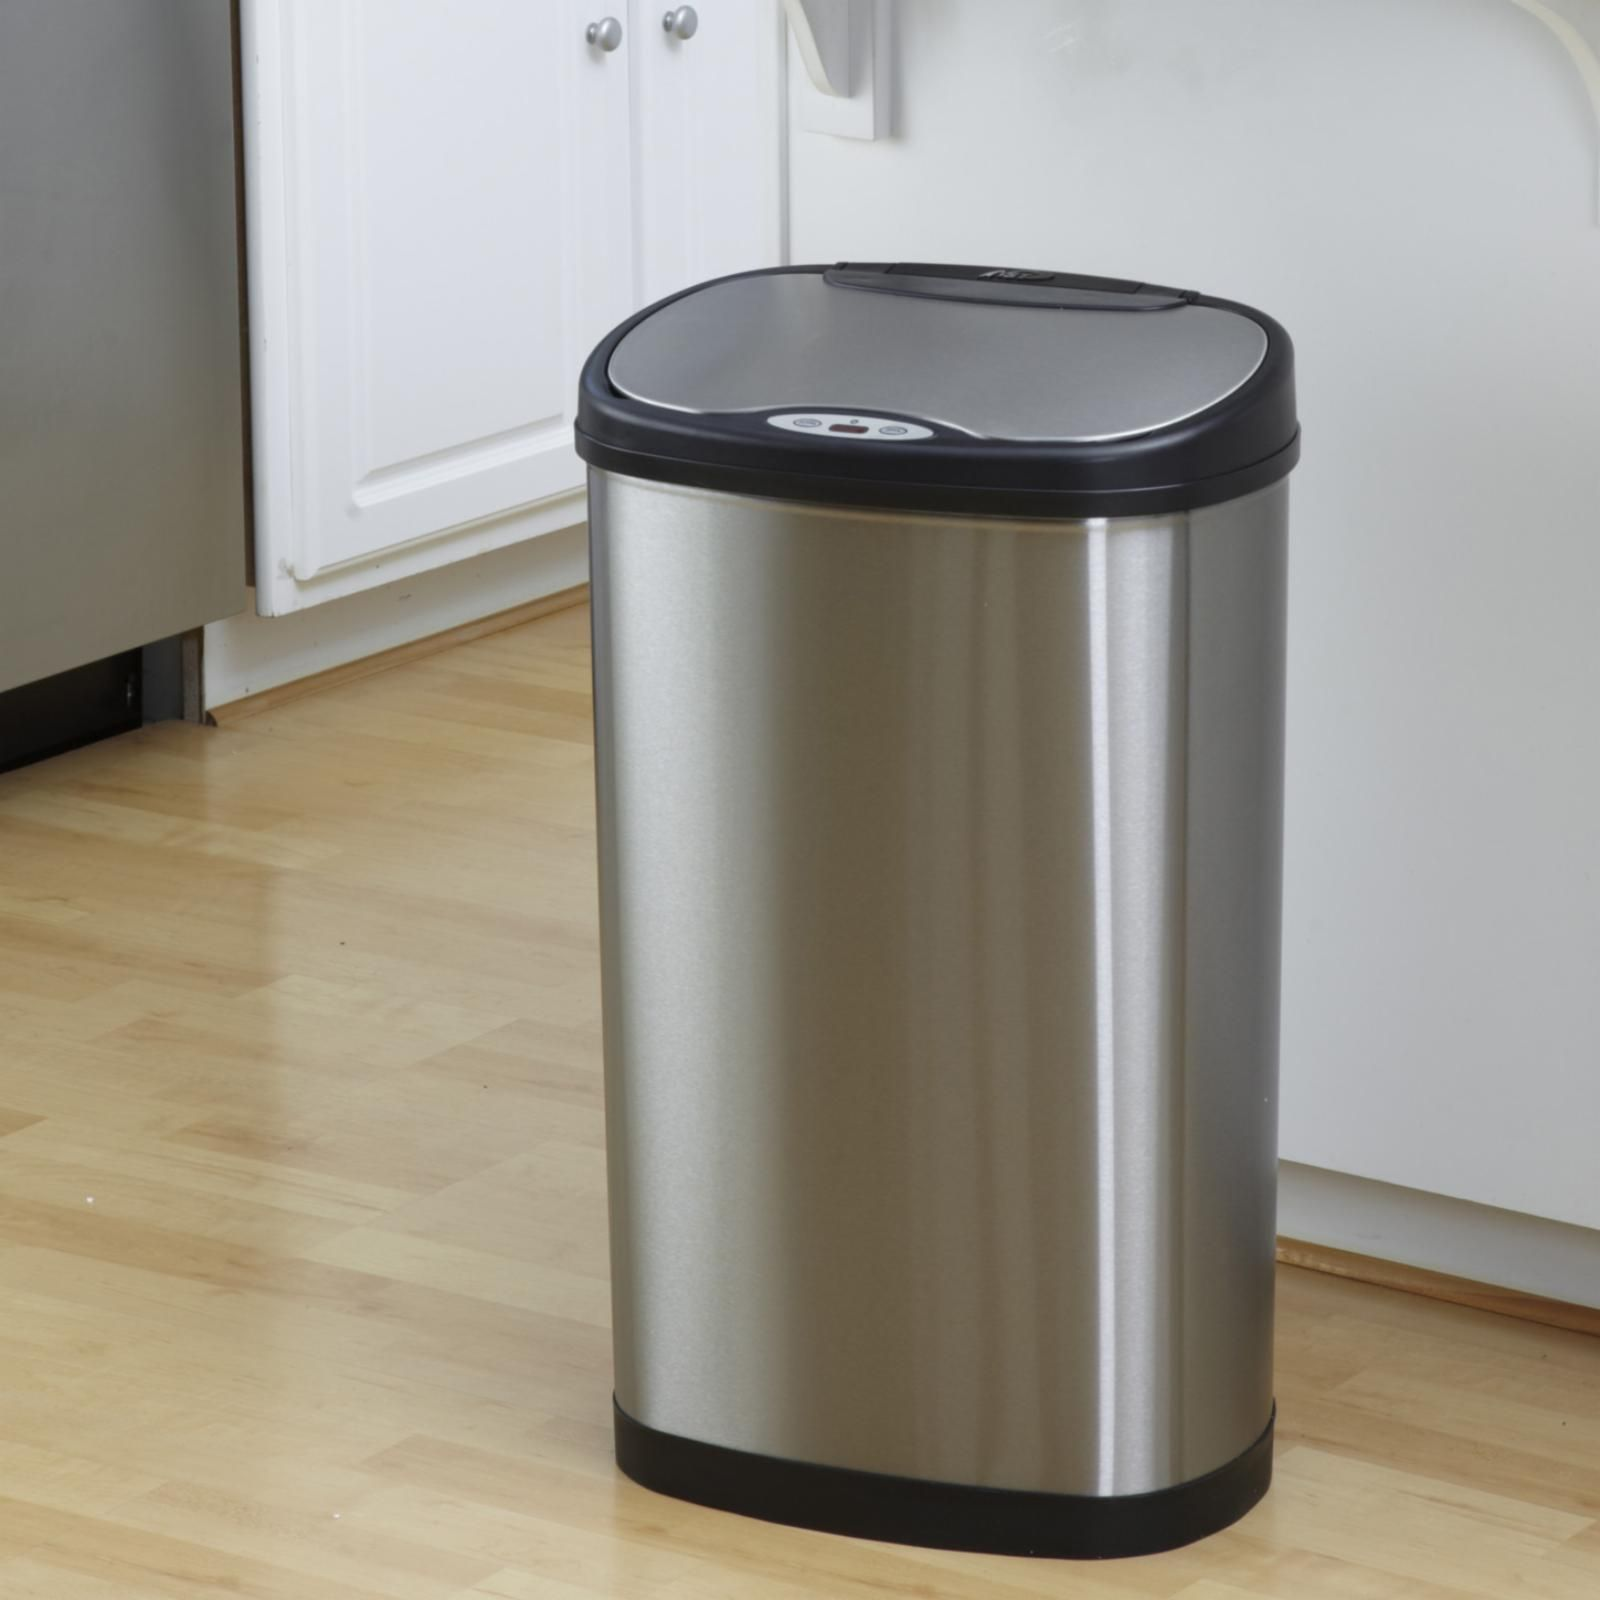 Nine Stars Dzt 50 13 Touchless Stainless Steel 13 2 Gallon Trash Can In 2021 Trash Can Glass Food Storage Containers Garbage Can 13 gallon trash can dimensions